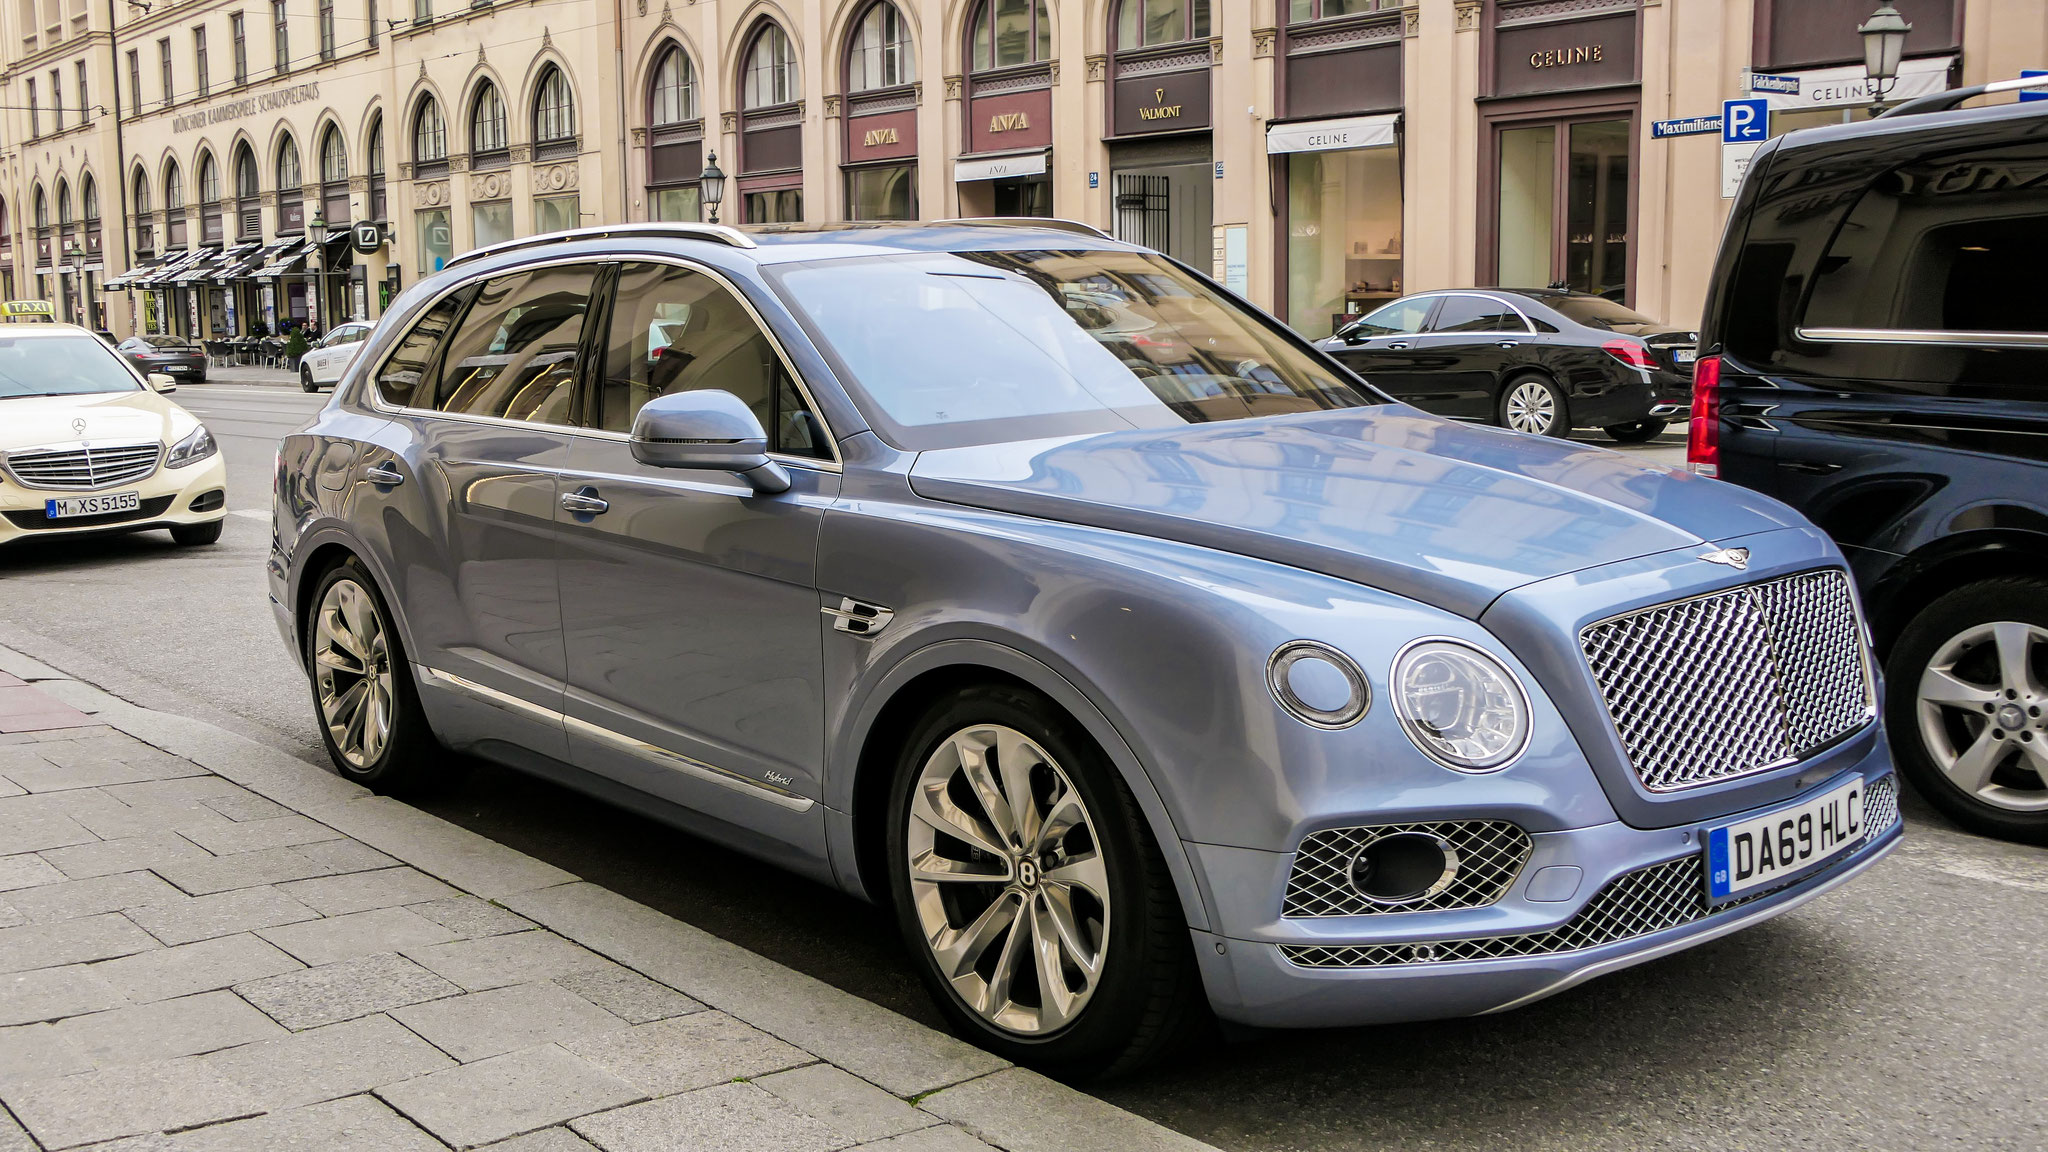 Bentley Bentayga Hybrid - DA69-HLC (GB)